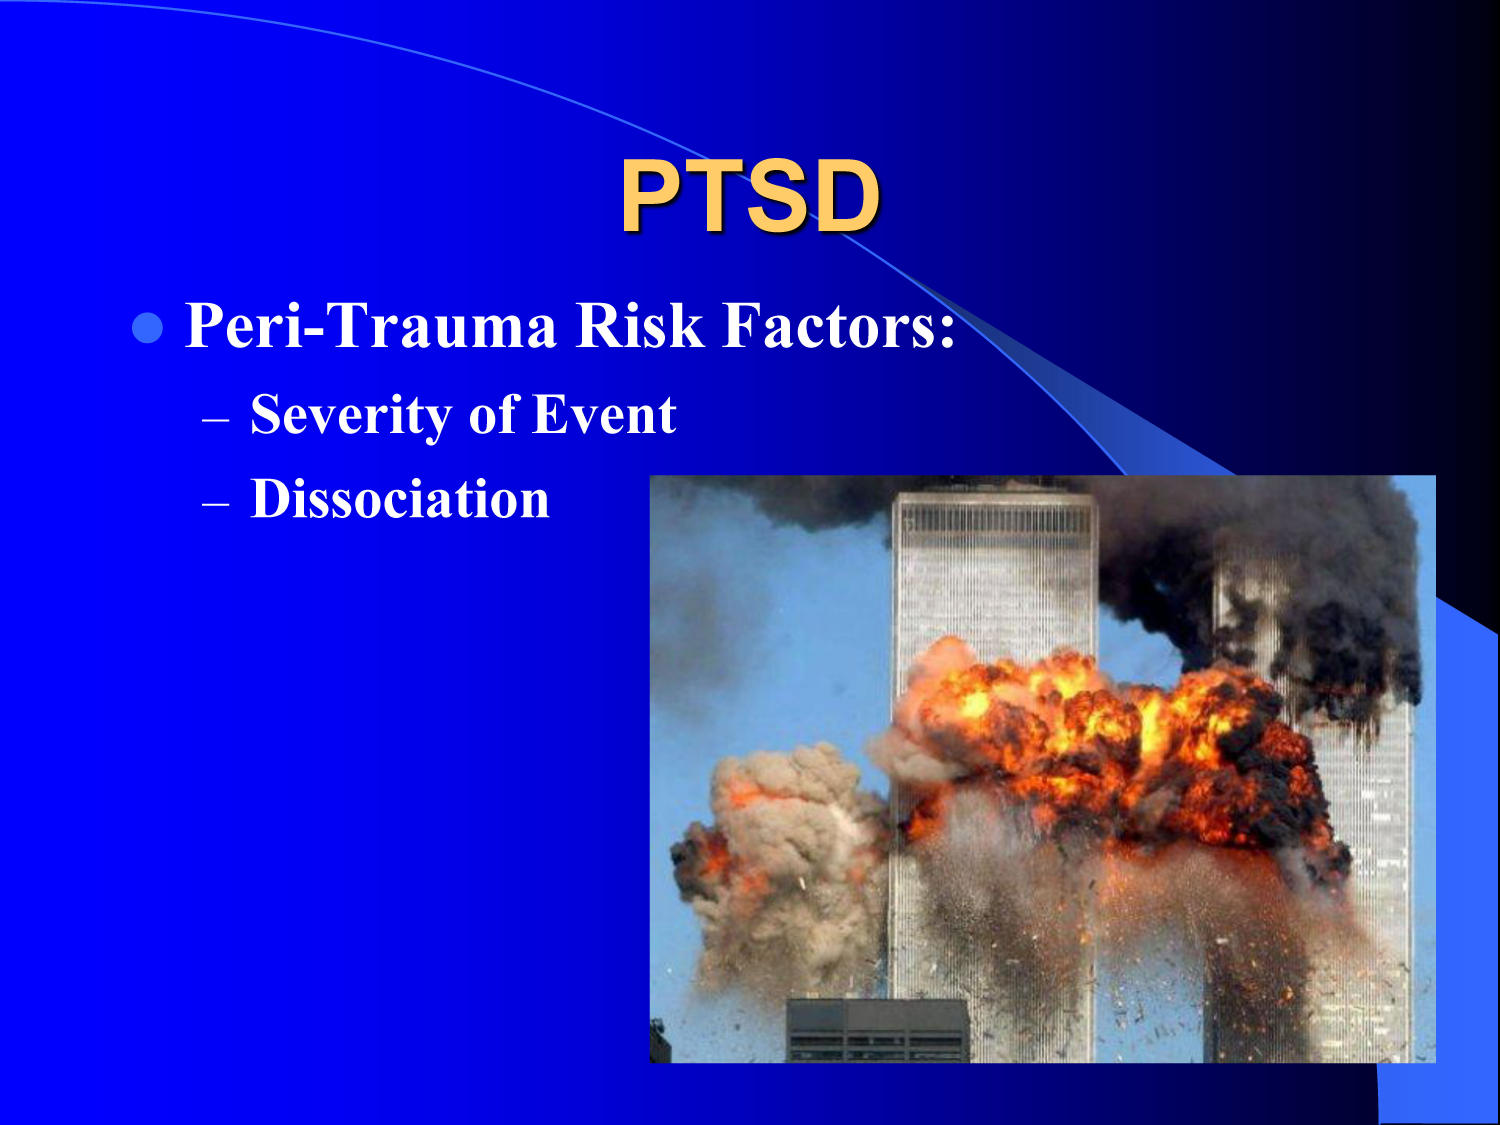 Posttraumatic Stress Disorder (PTSD): What is it and what causes it?                                                                                                      [Sequence #]: 12 of 17